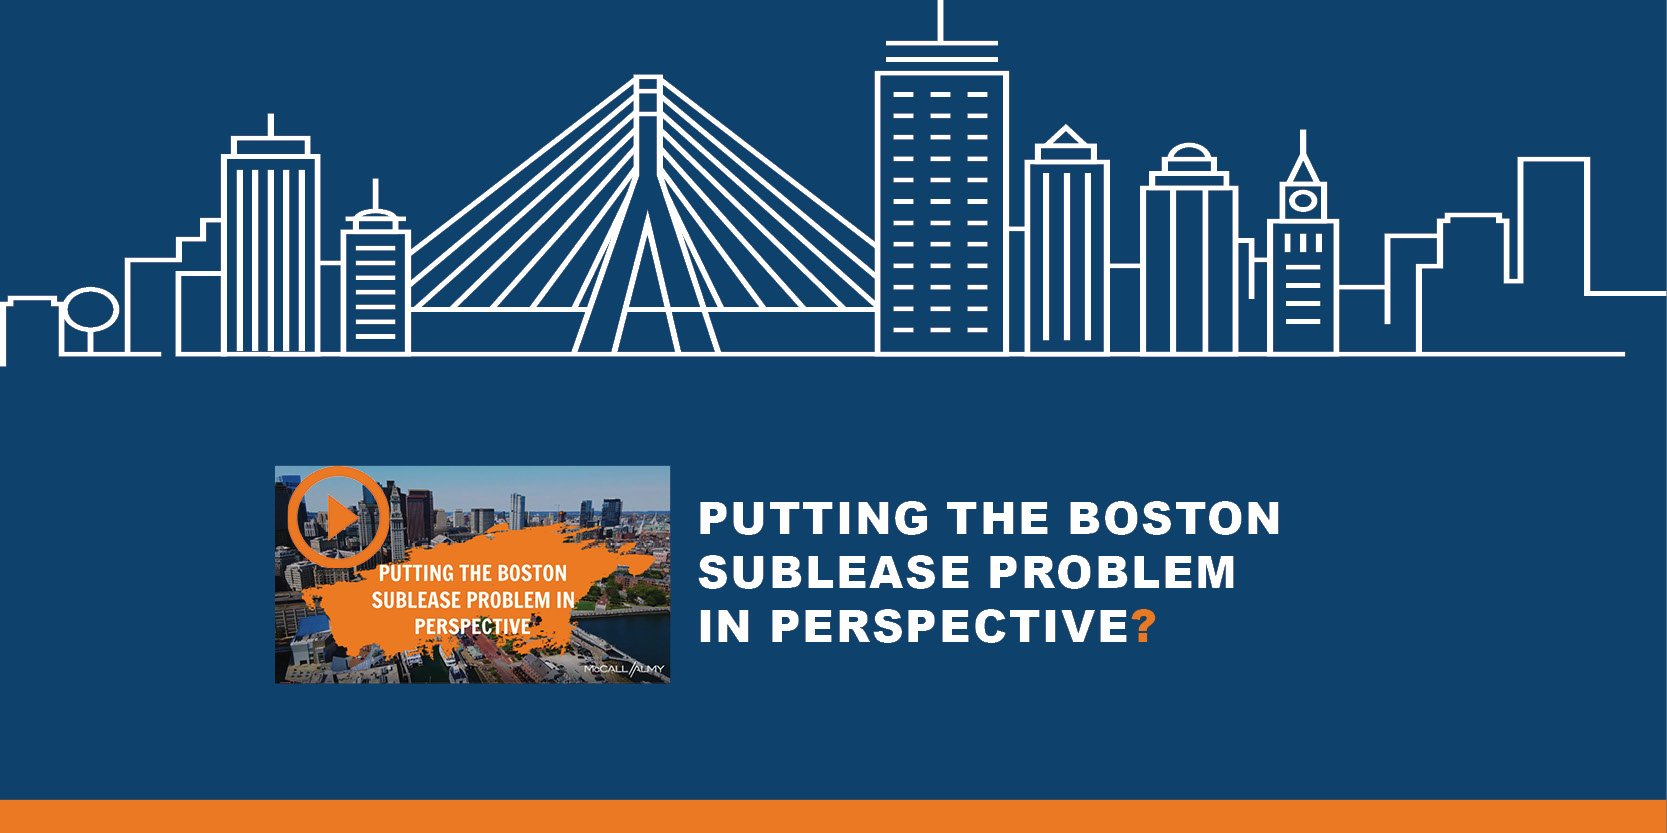 Putting the Boston Sublease Problem in Perspective